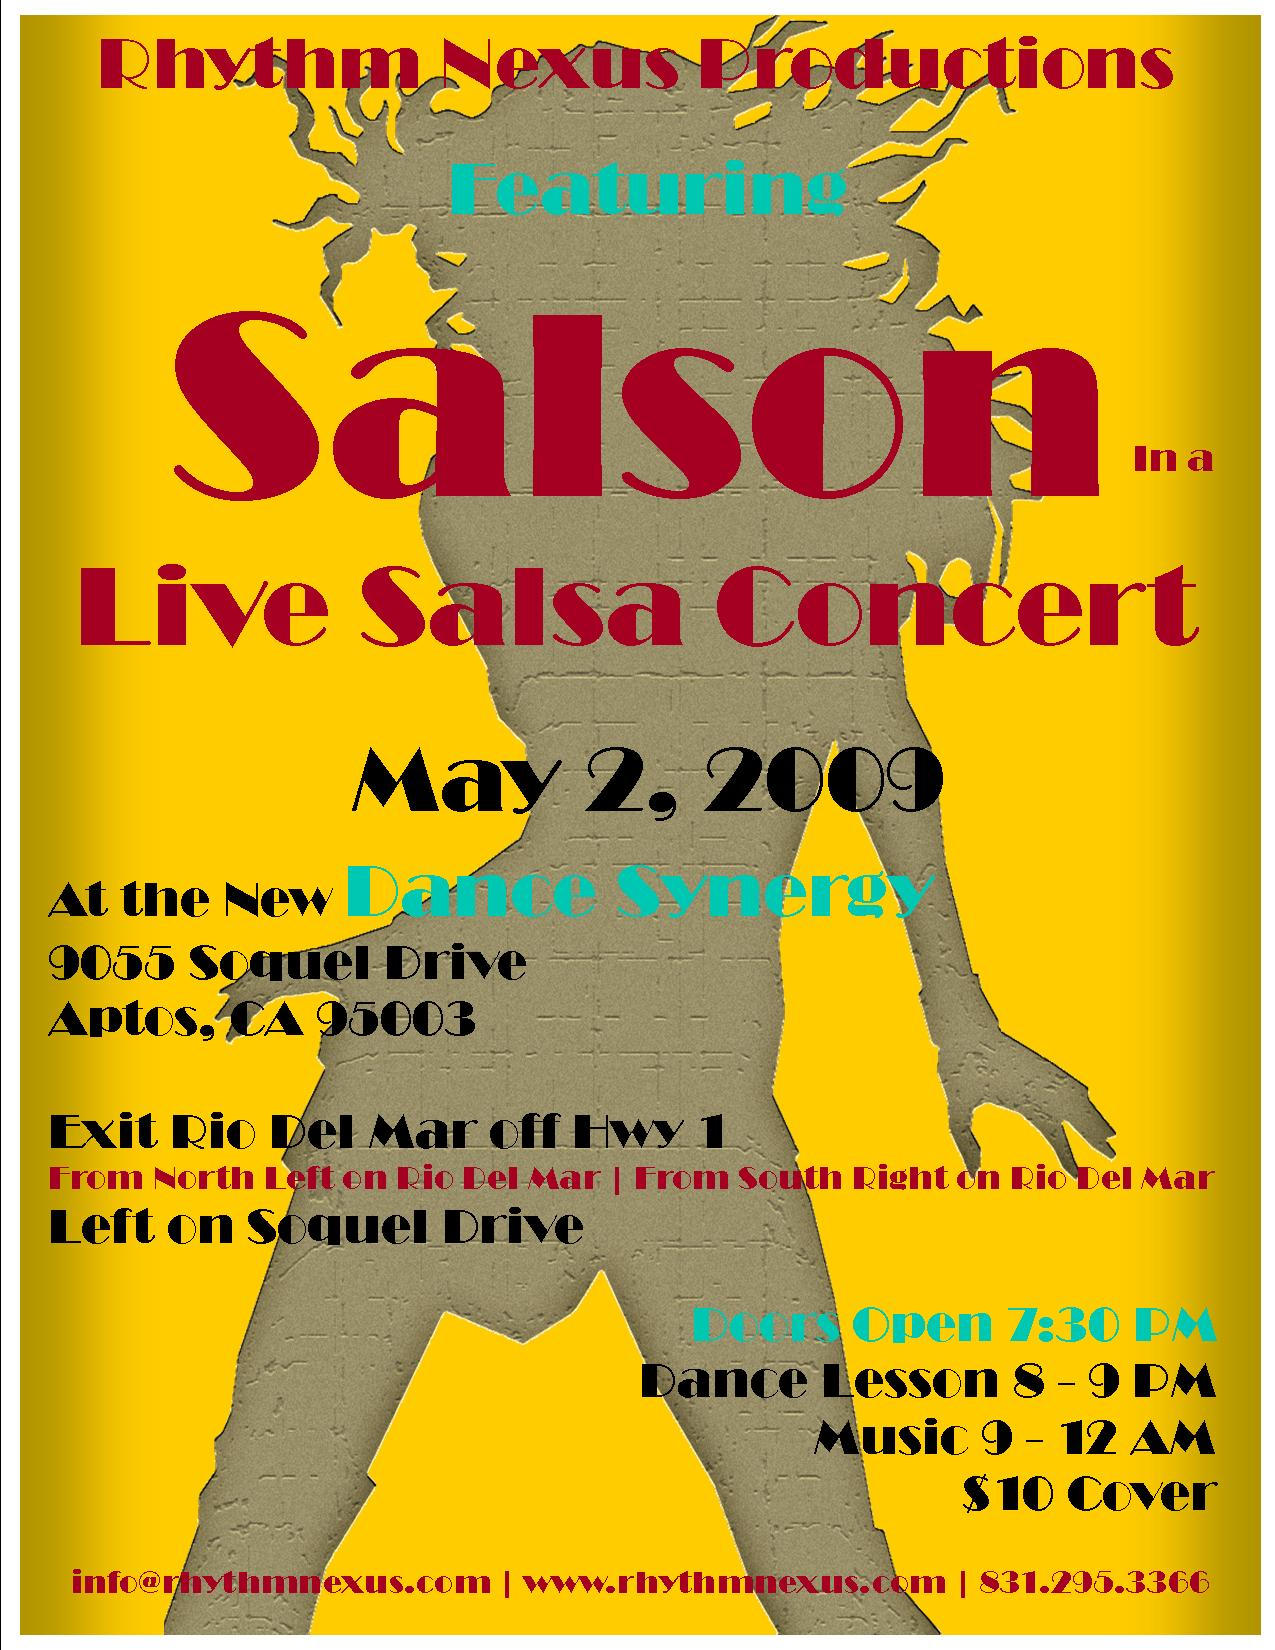 Salson at Dance Synergy, Saturday Aptos May 2